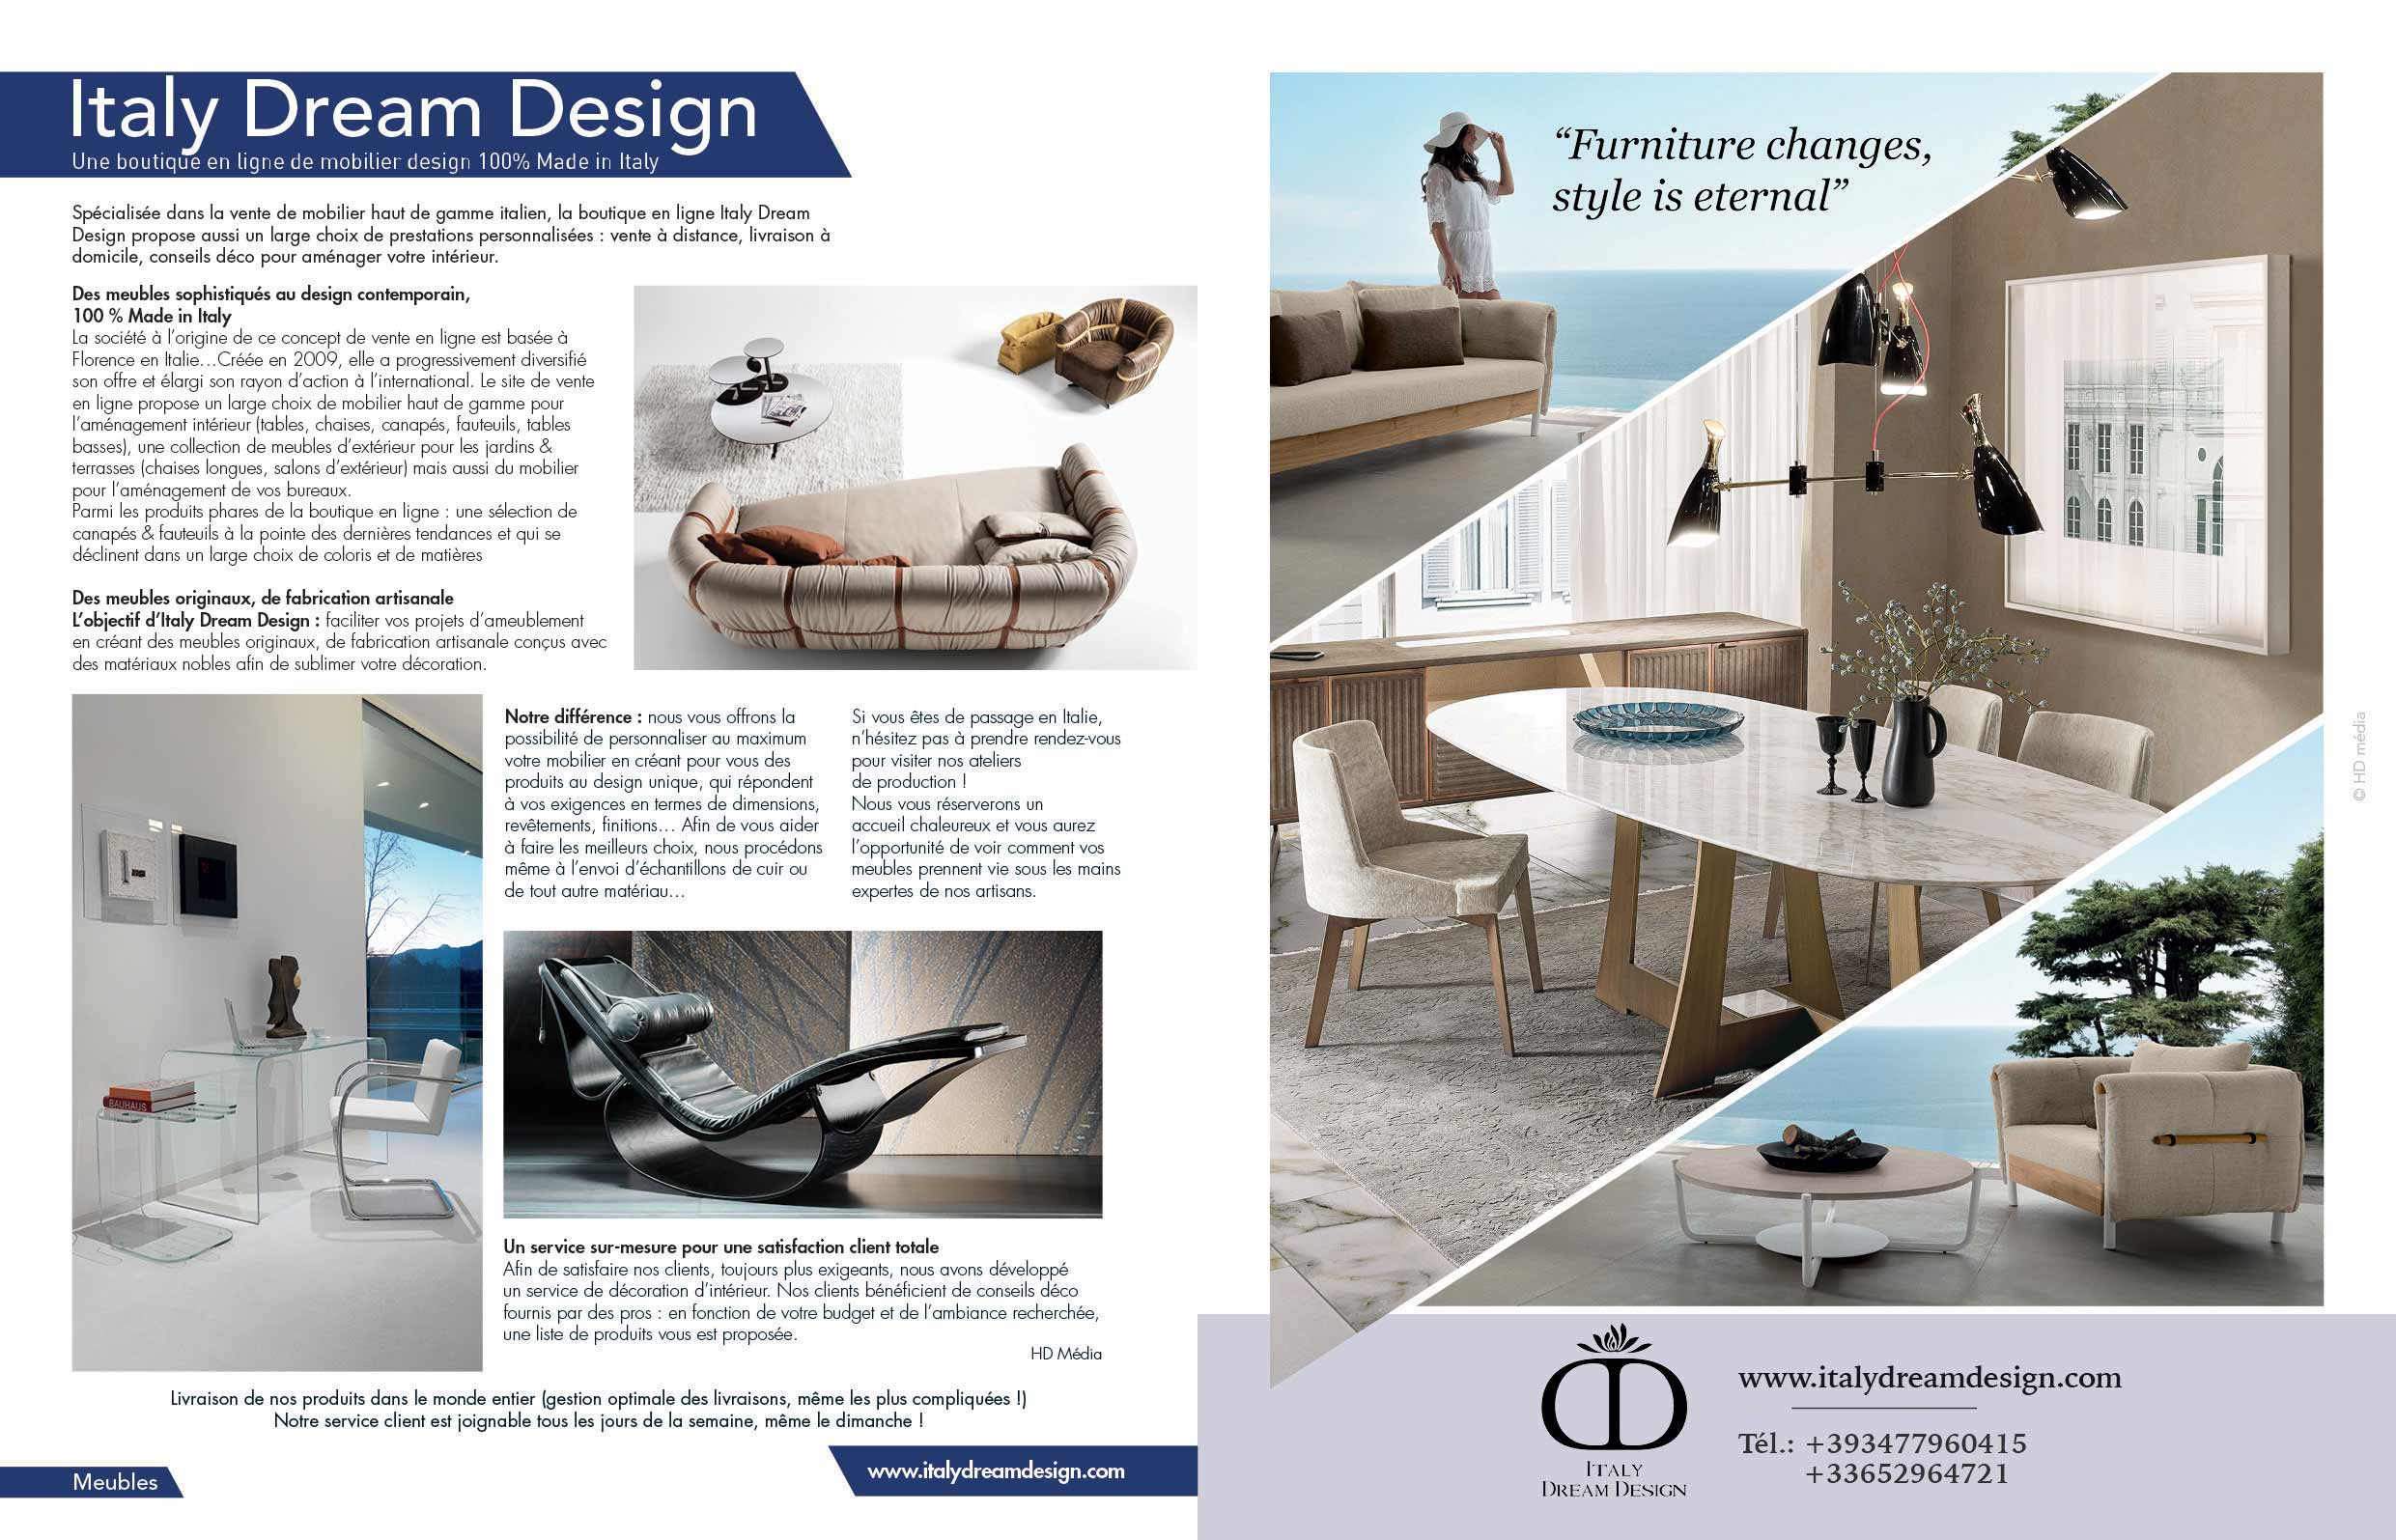 Mobilier De Mobil Home maison actuelle ocober-november 2019 | italy dream design